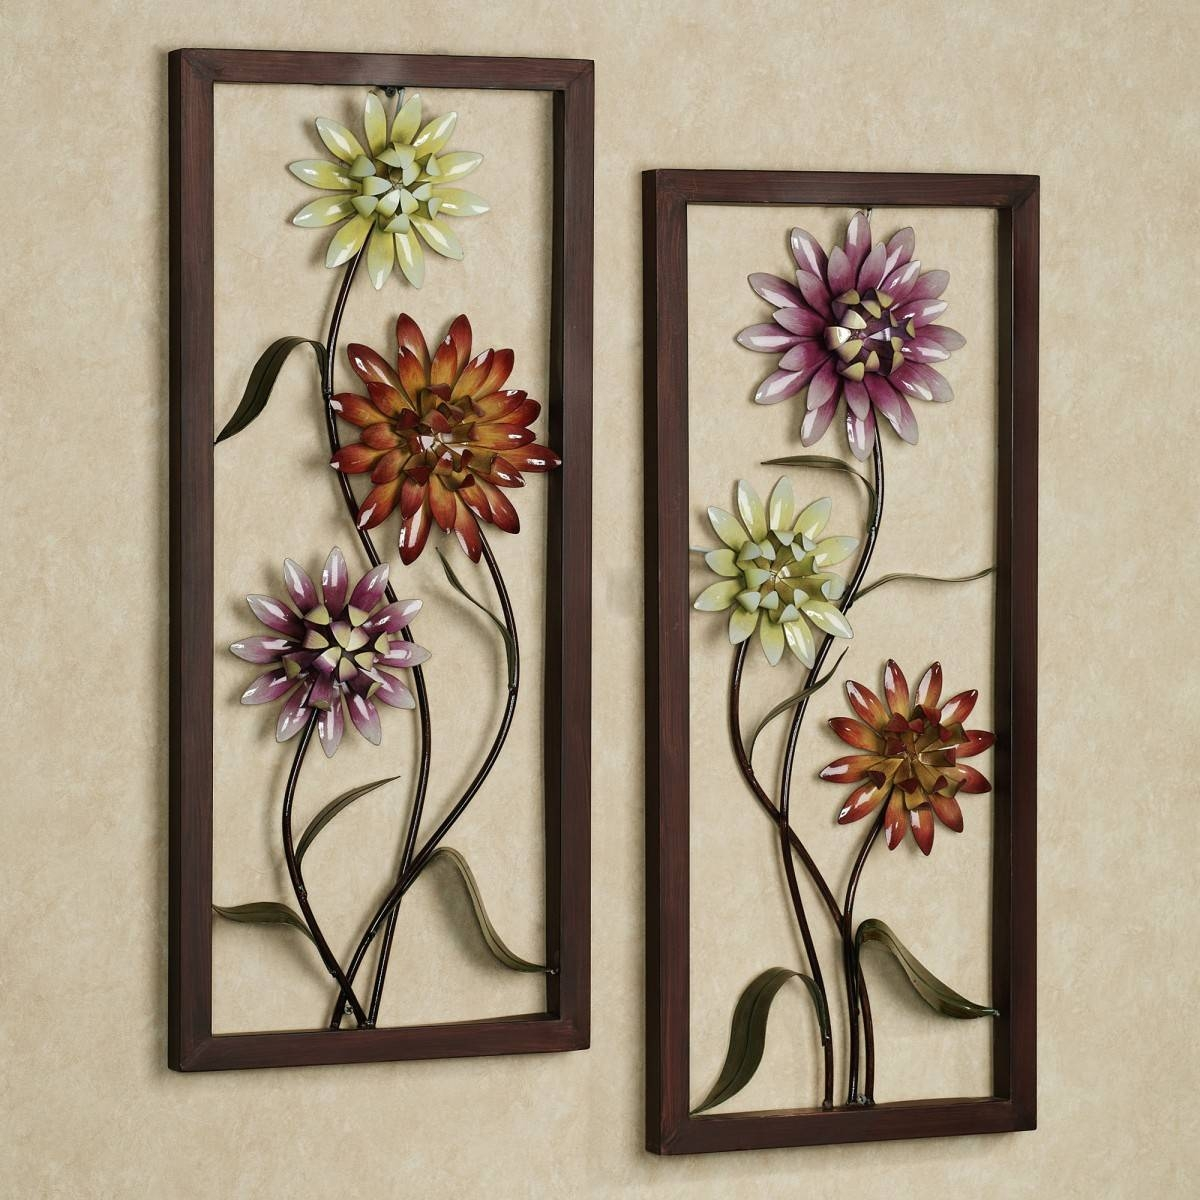 Impressive Ceramic Flower Wall Decor For Sale Ceramic Magnolia Inside Most Recently Released Ceramic Flower Wall Art (Gallery 20 of 30)